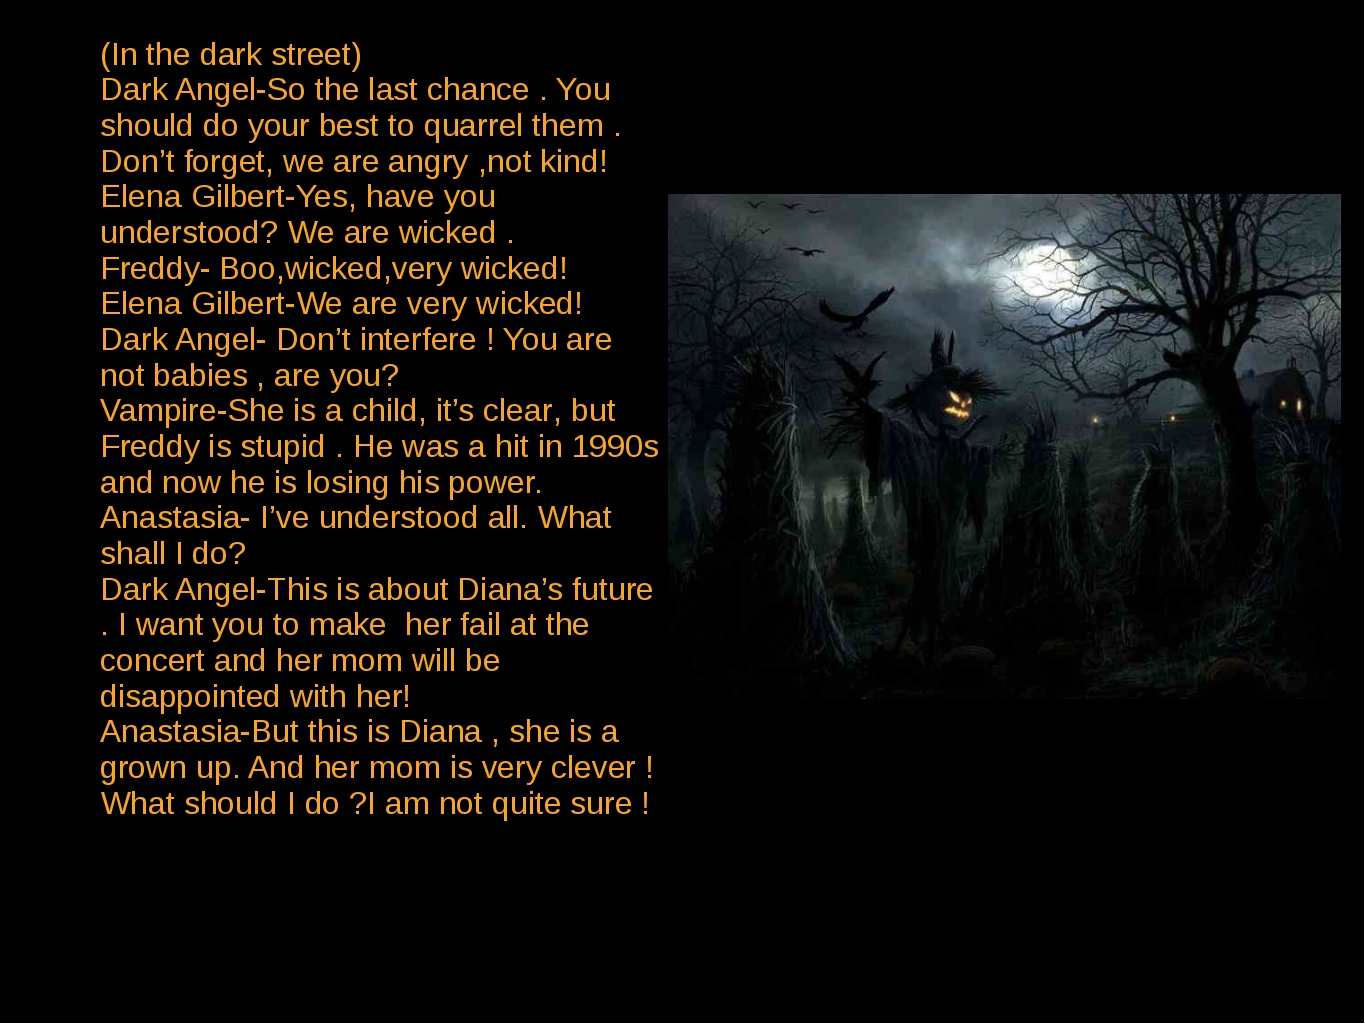 (In the dark street) Dark Angel-So the last chance . You should do your best...